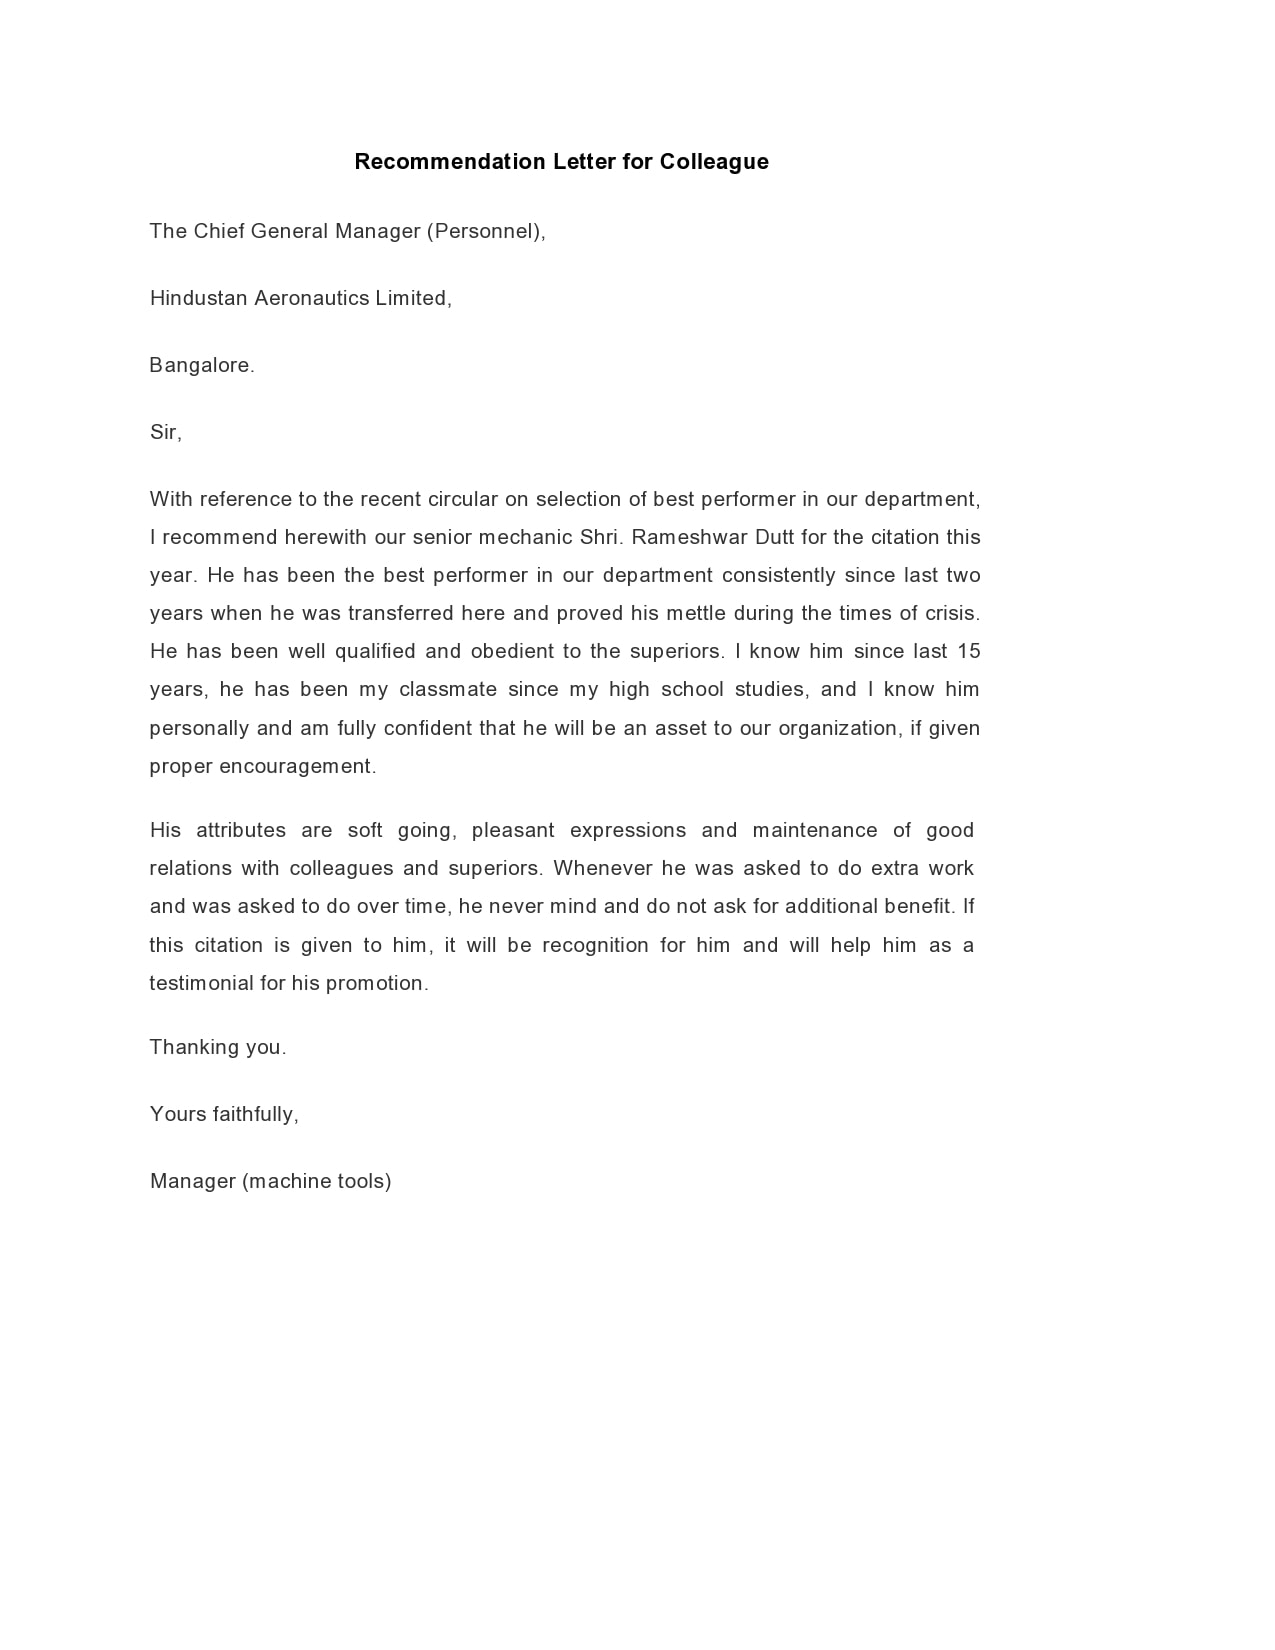 Letter Of Recommendation For A Friend And Colleague from templatearchive.com